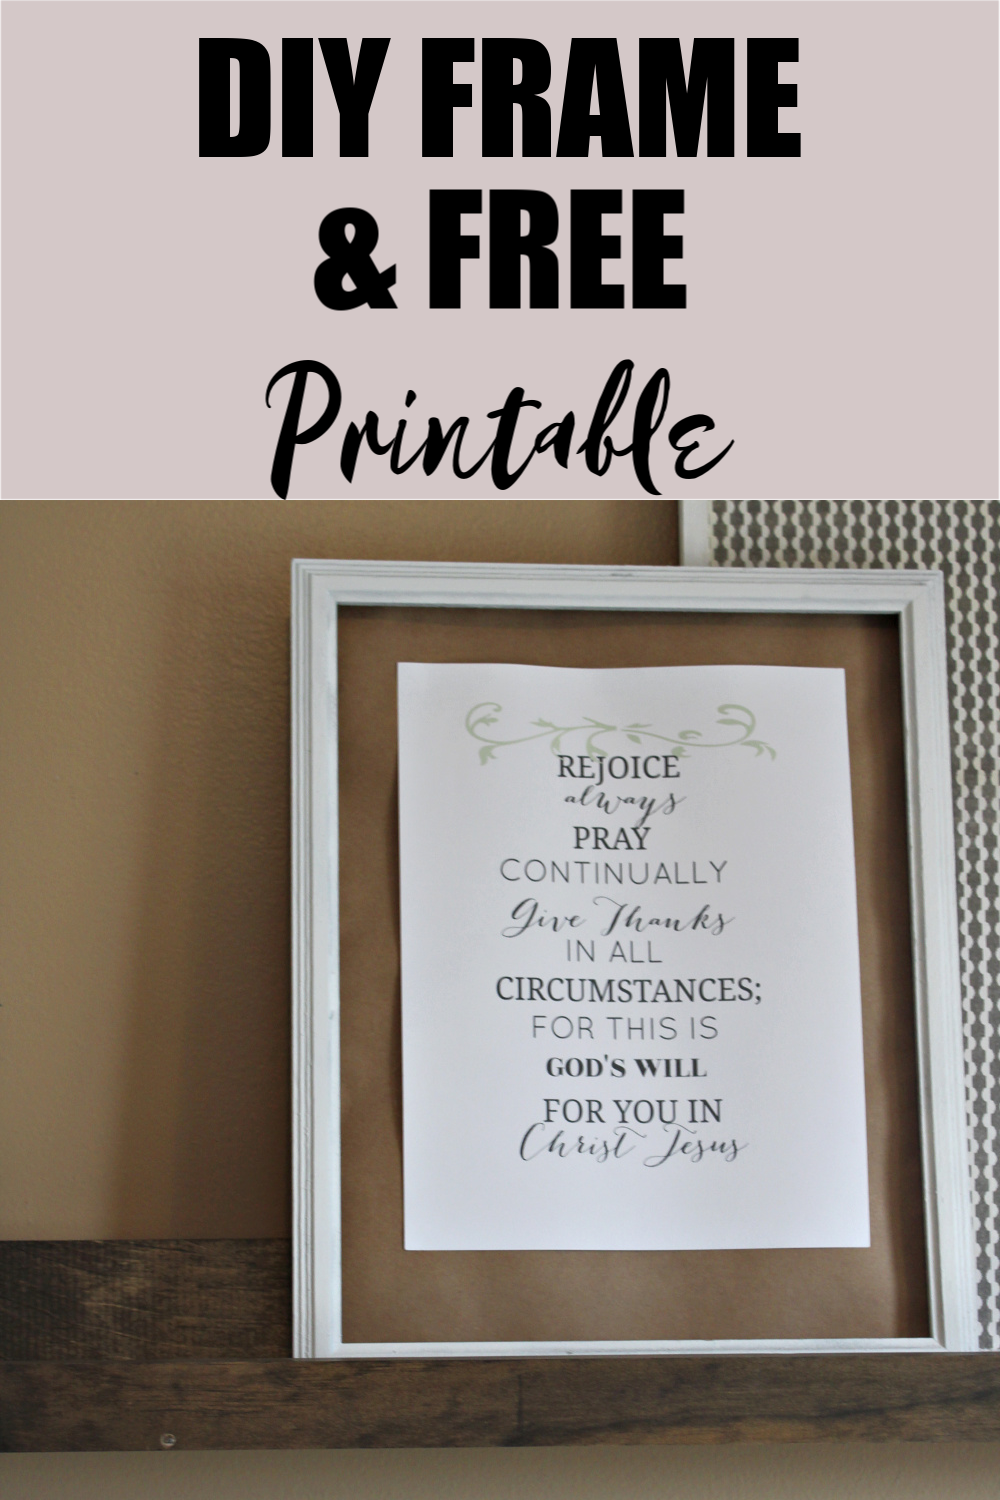 Hey guys, I'm back with another Free Printable - Rejoice Always!This is an 8×10 printable that you can put in some of my DIY Frames!